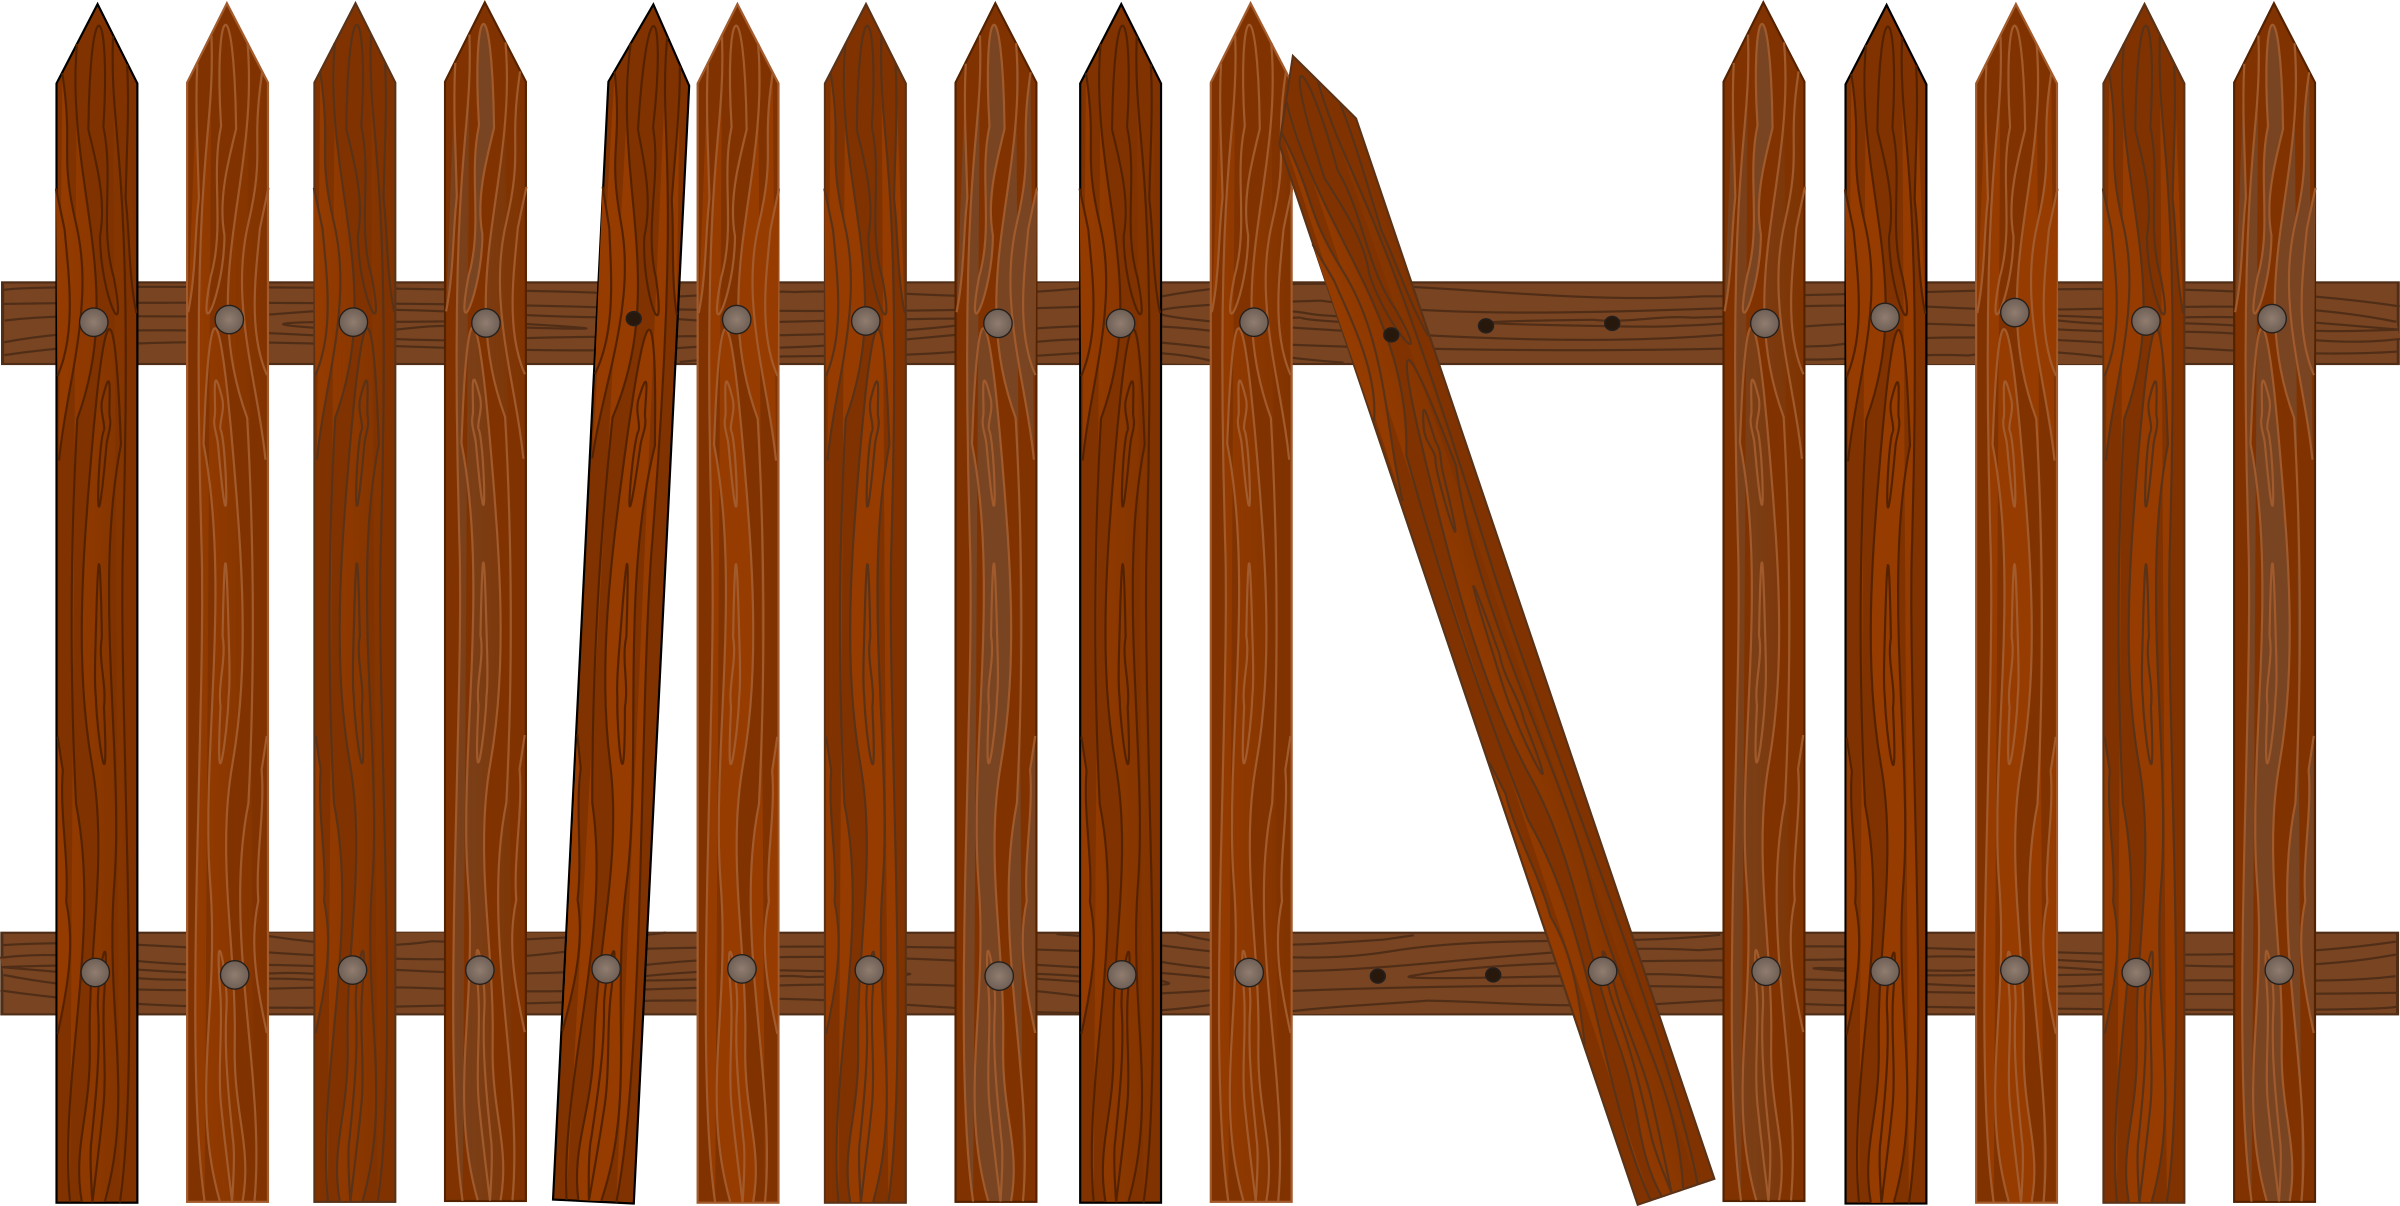 Picket Fence clipart #7, Download drawings